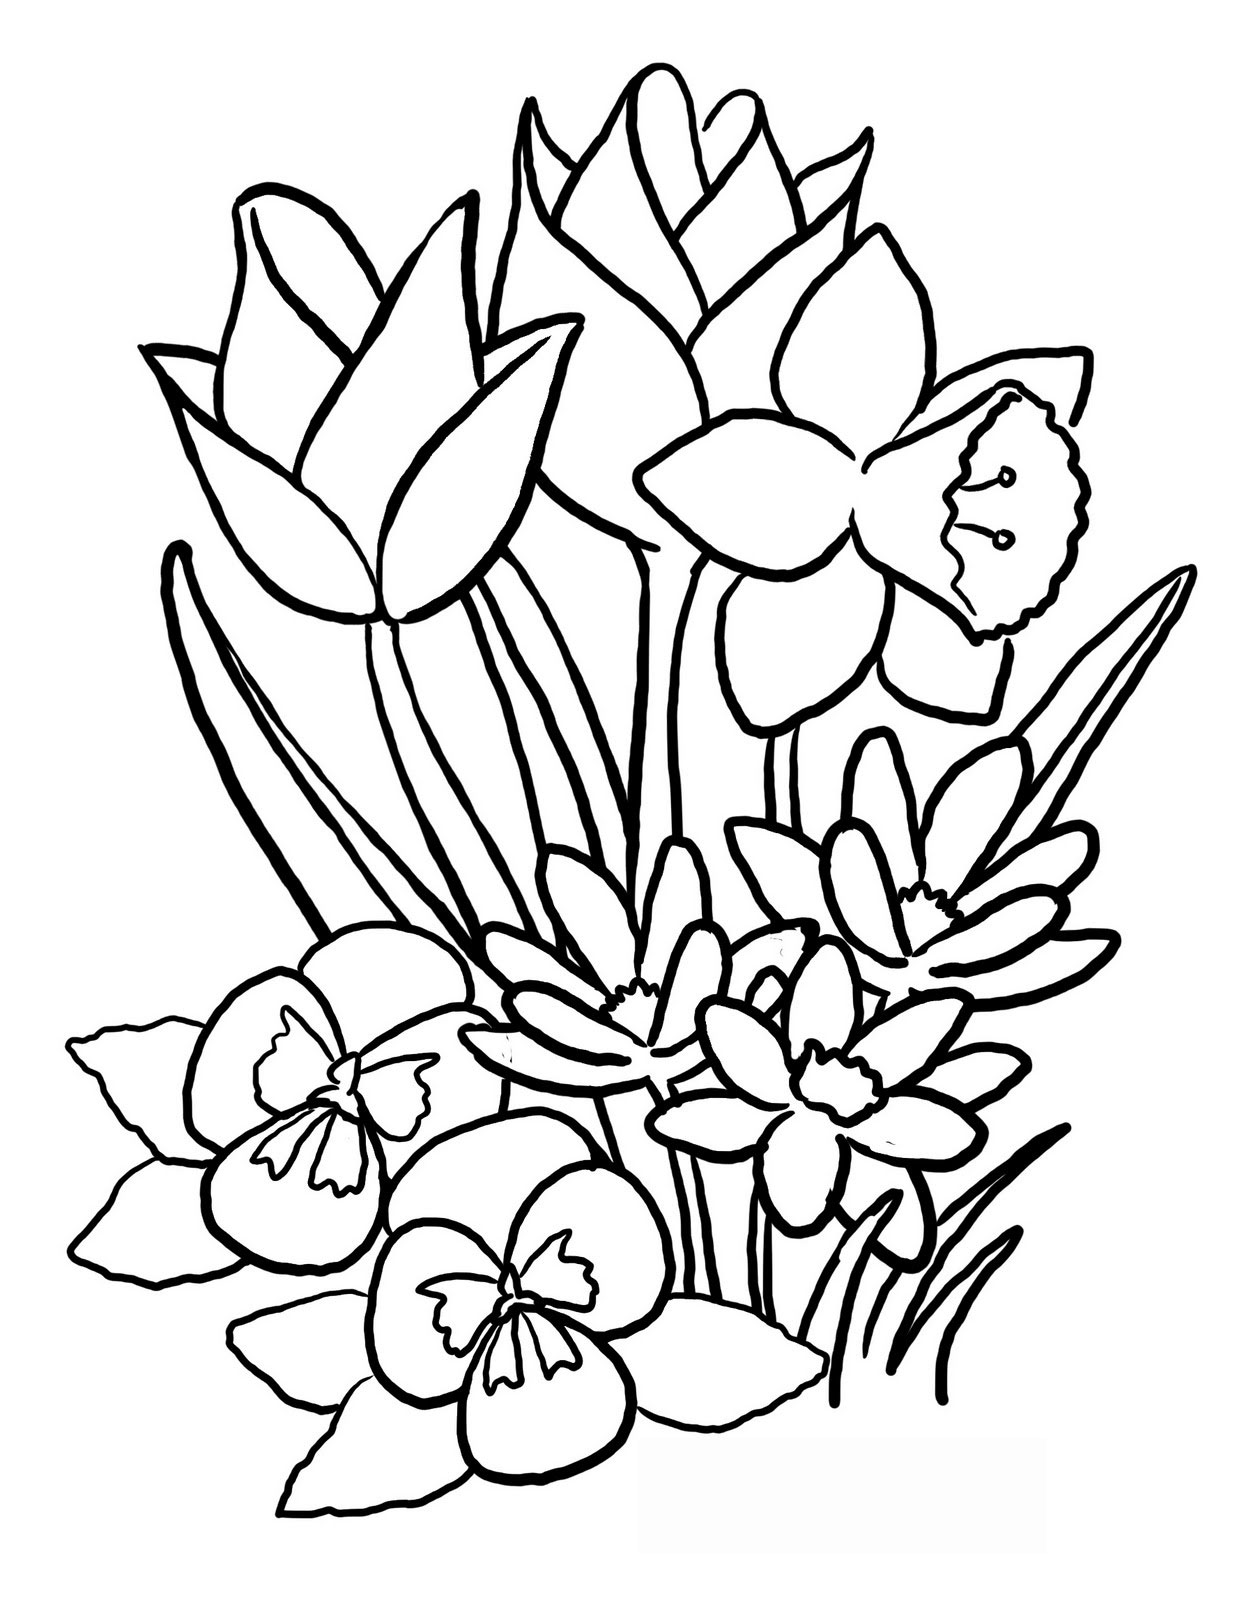 traceable pictures of flowers flower coloring page manualidades y quothazlo tu mismo traceable of flowers pictures